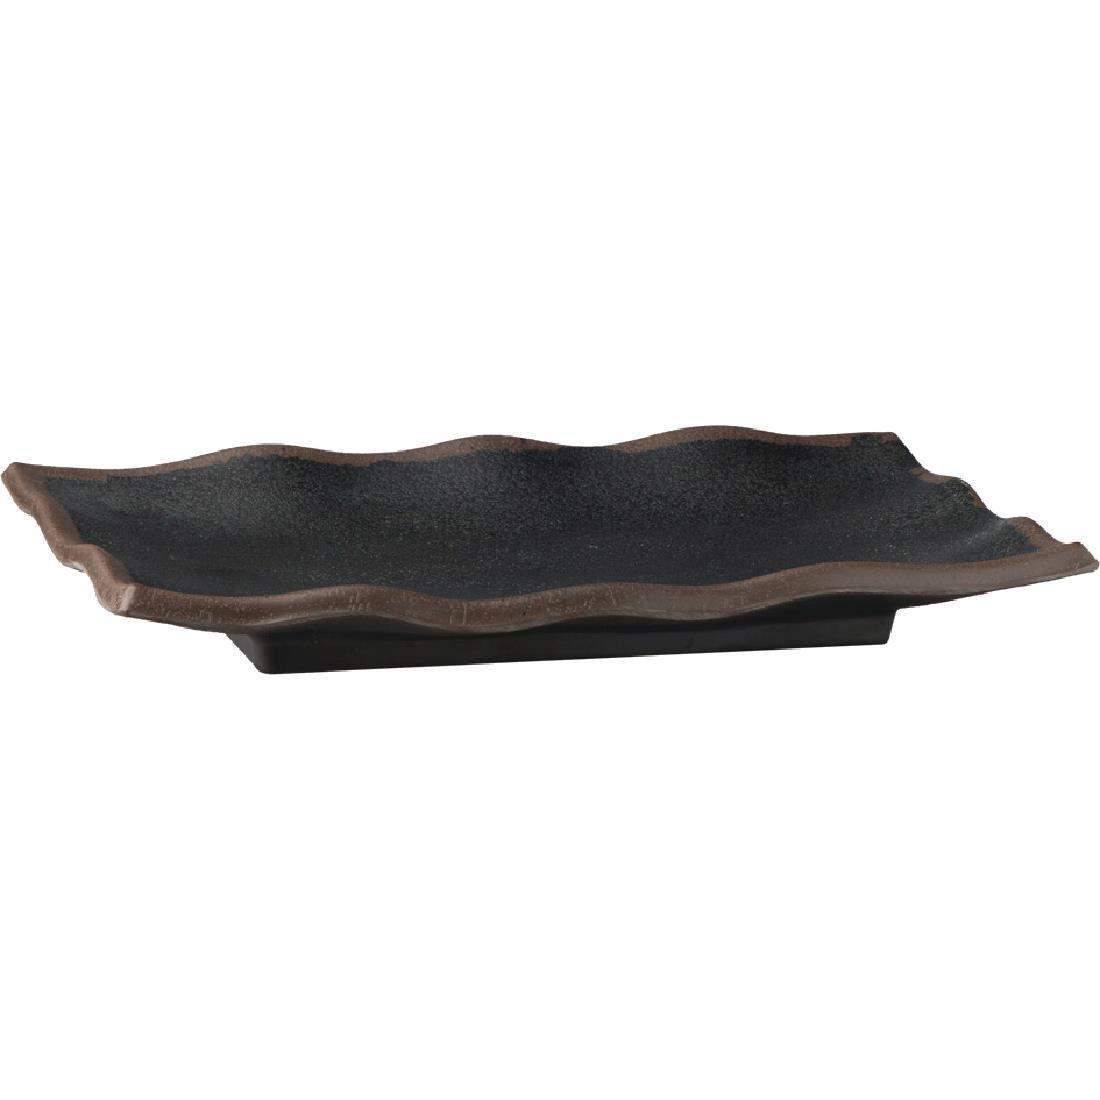 APS Marone Melamine Wavy Tray Black 275x 110mm - Each - GK839